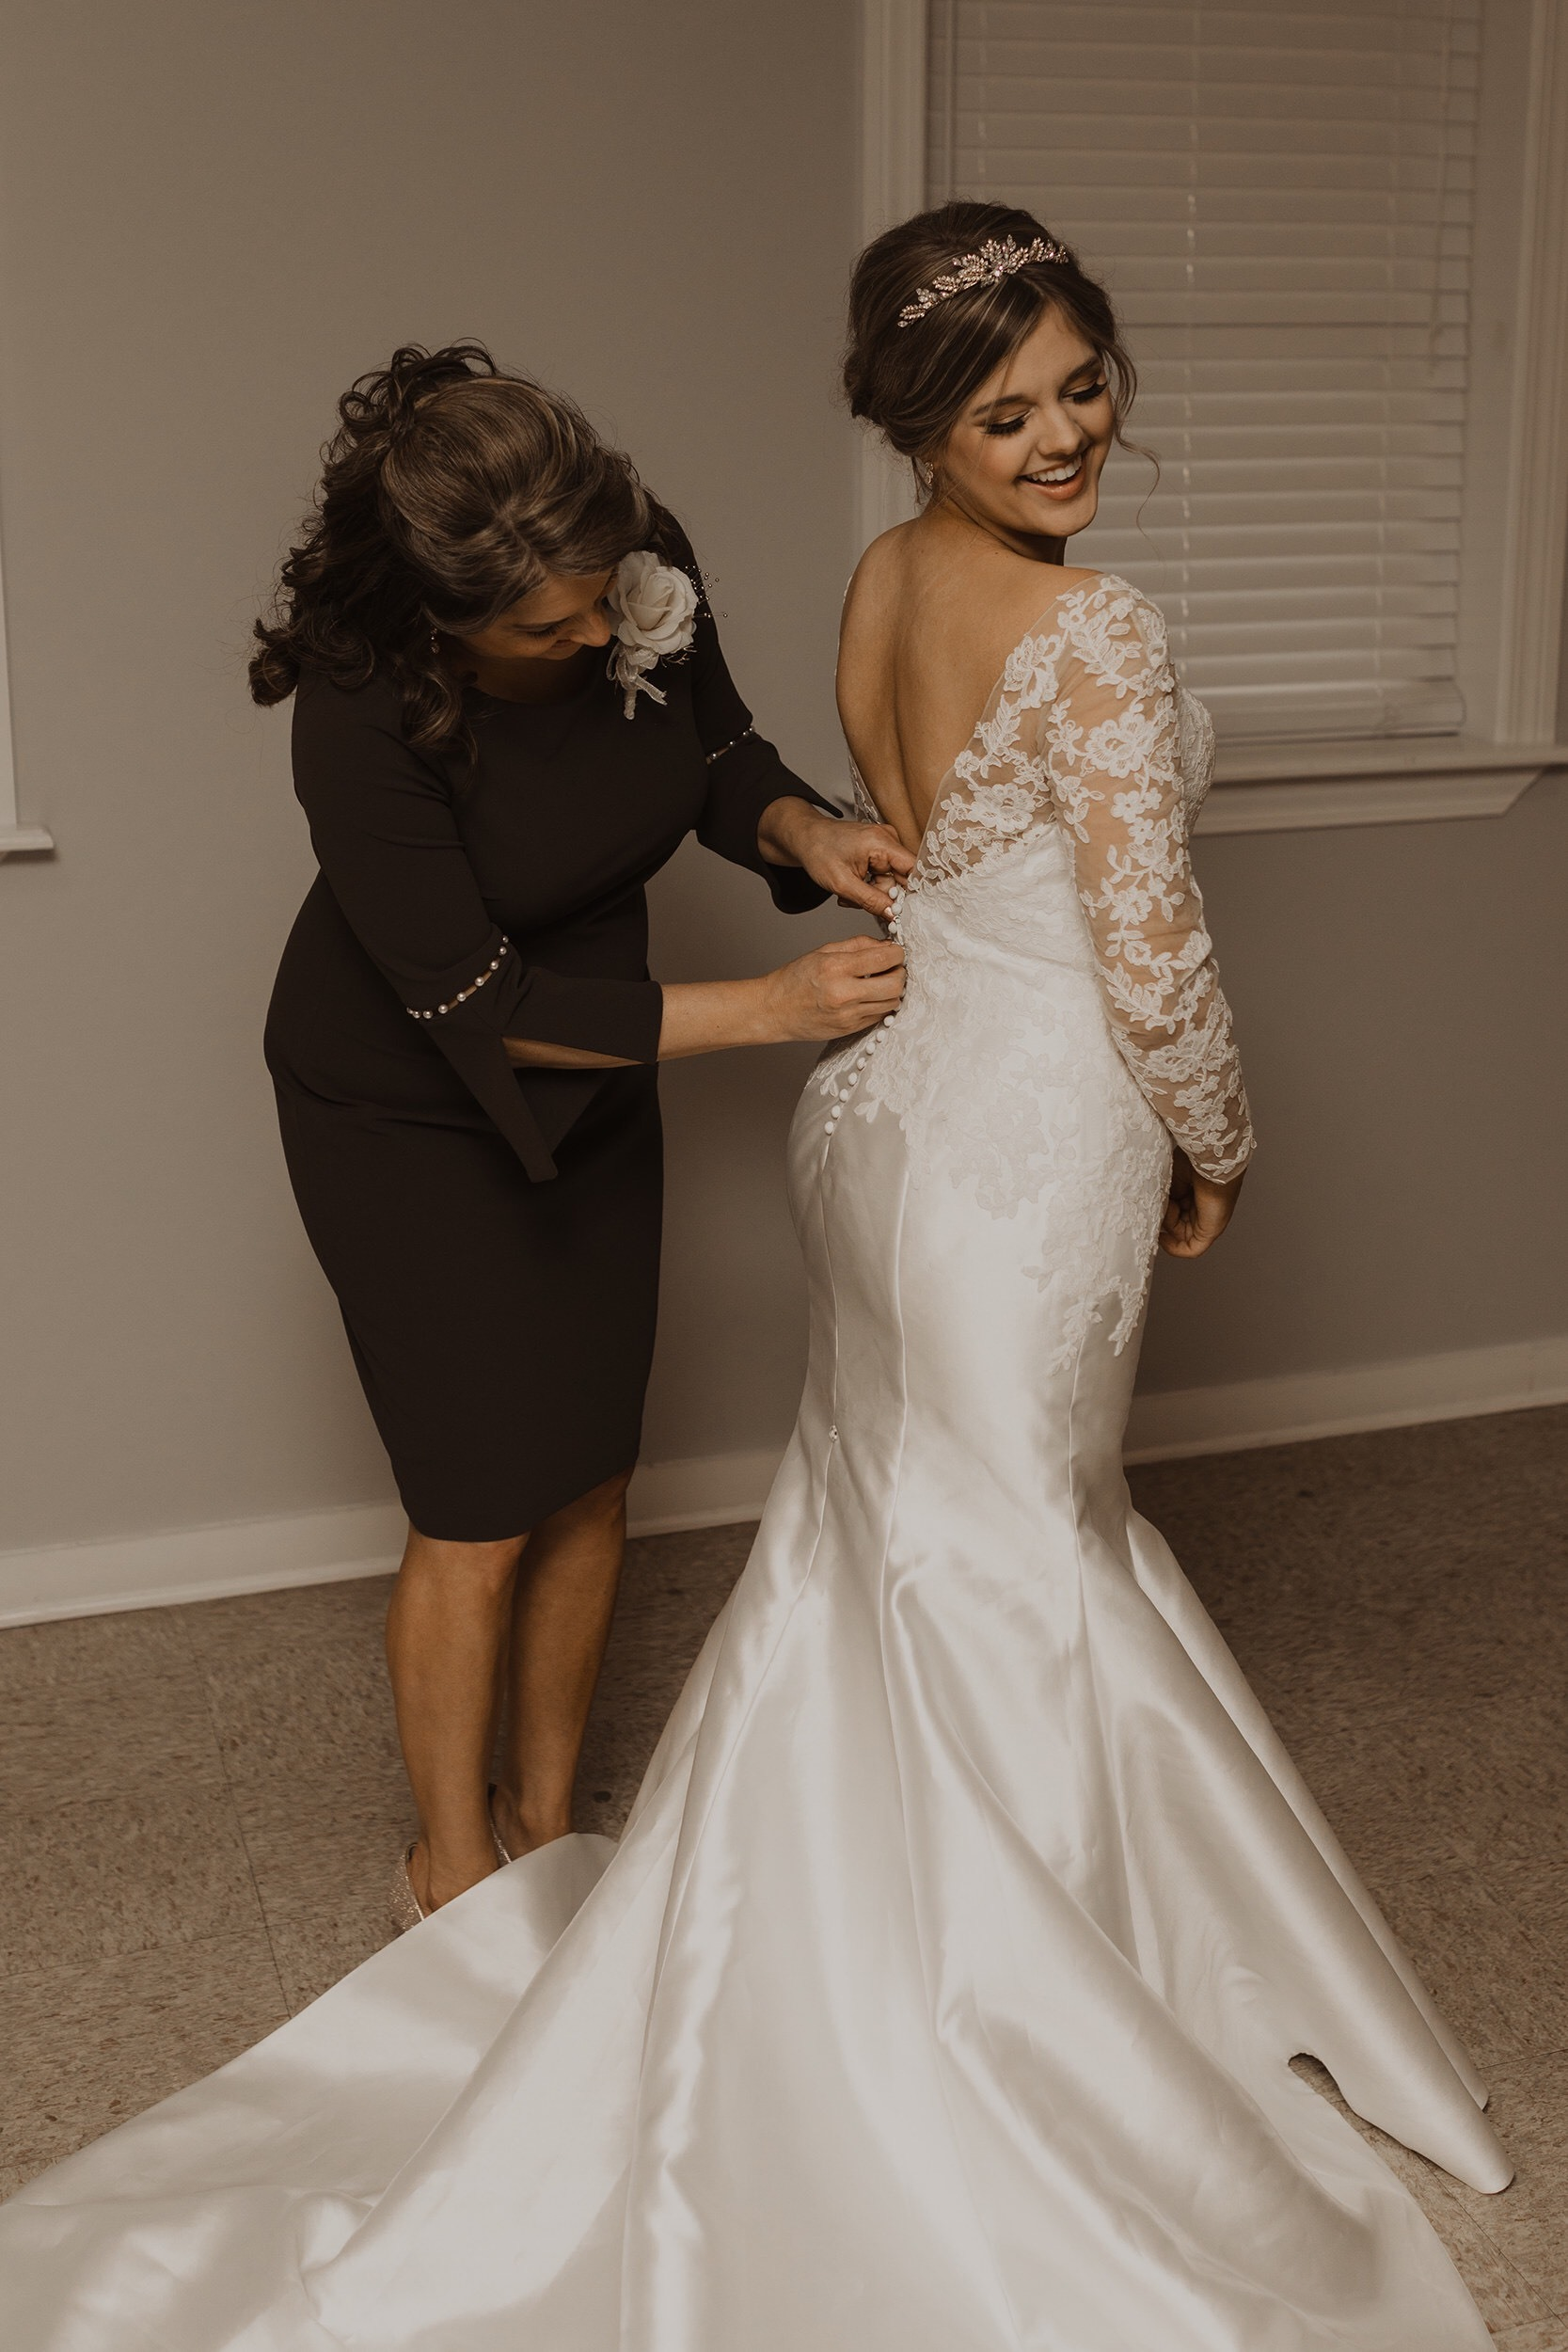 Anomalie bride Lauren getting ready in her fit and flare custom wedding dress